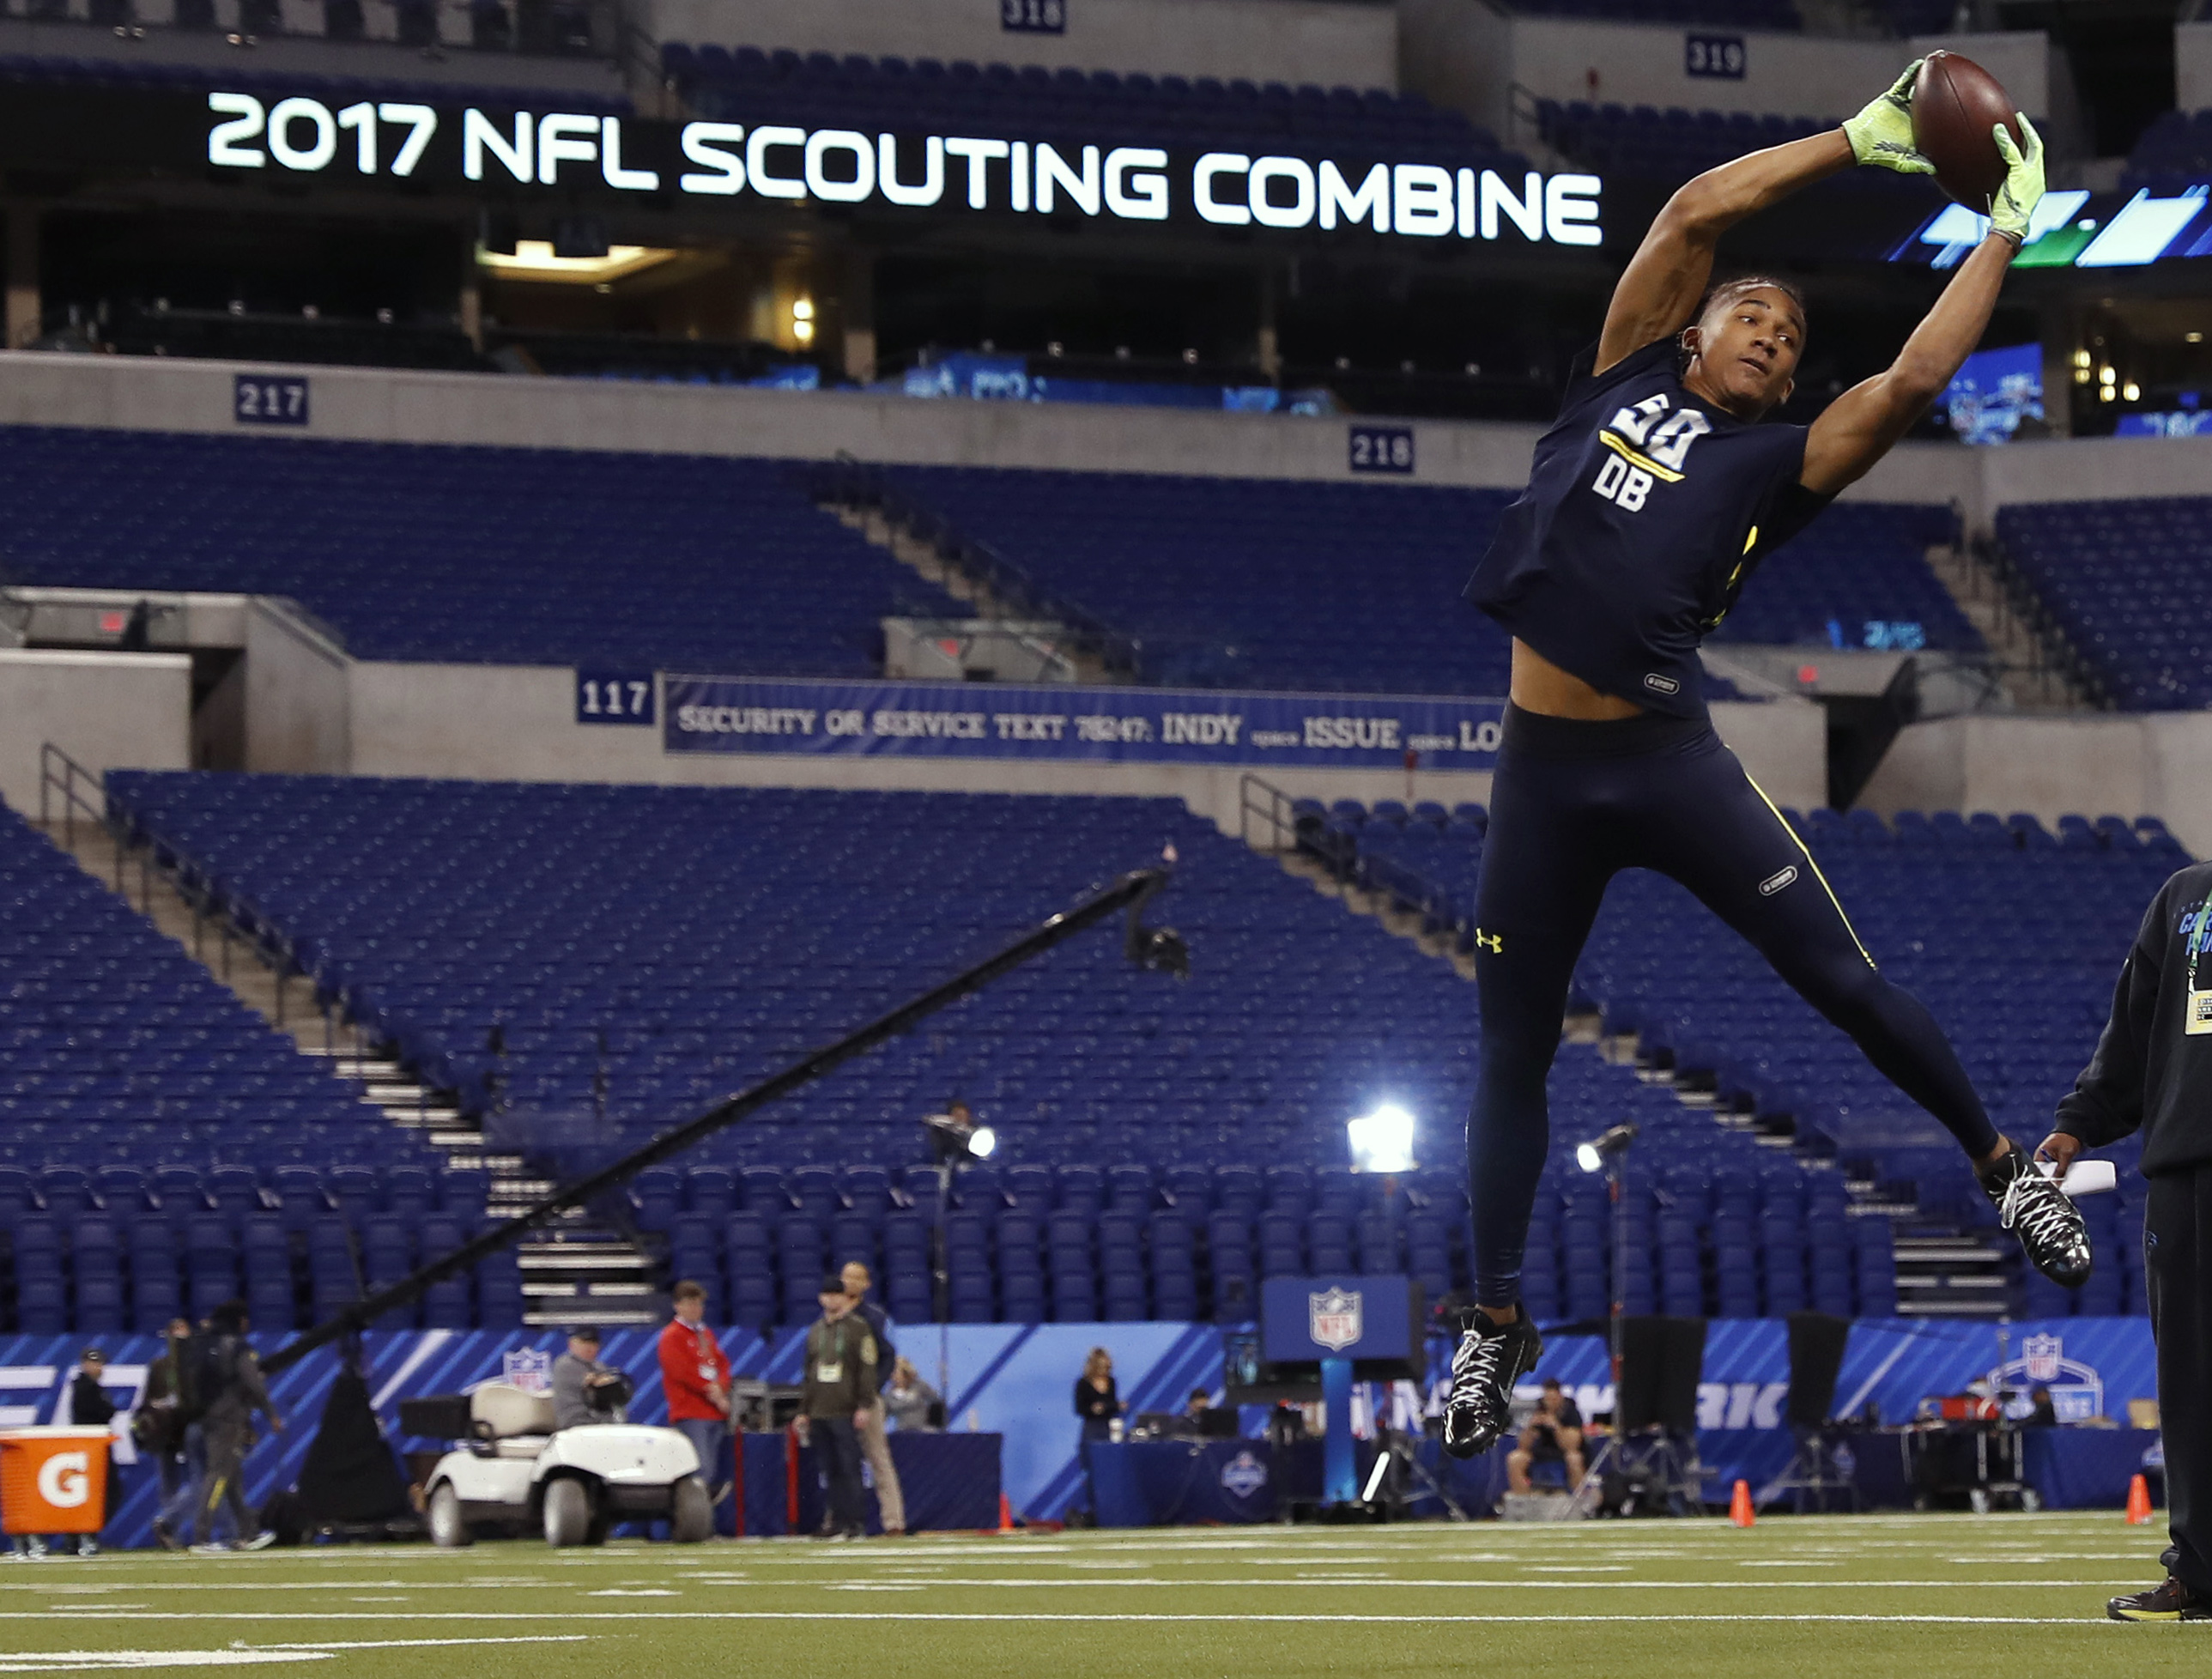 LIVE UPDATES: NFL Scouting Combine gets underway at Lucas Oil Stadium in Indianapolis